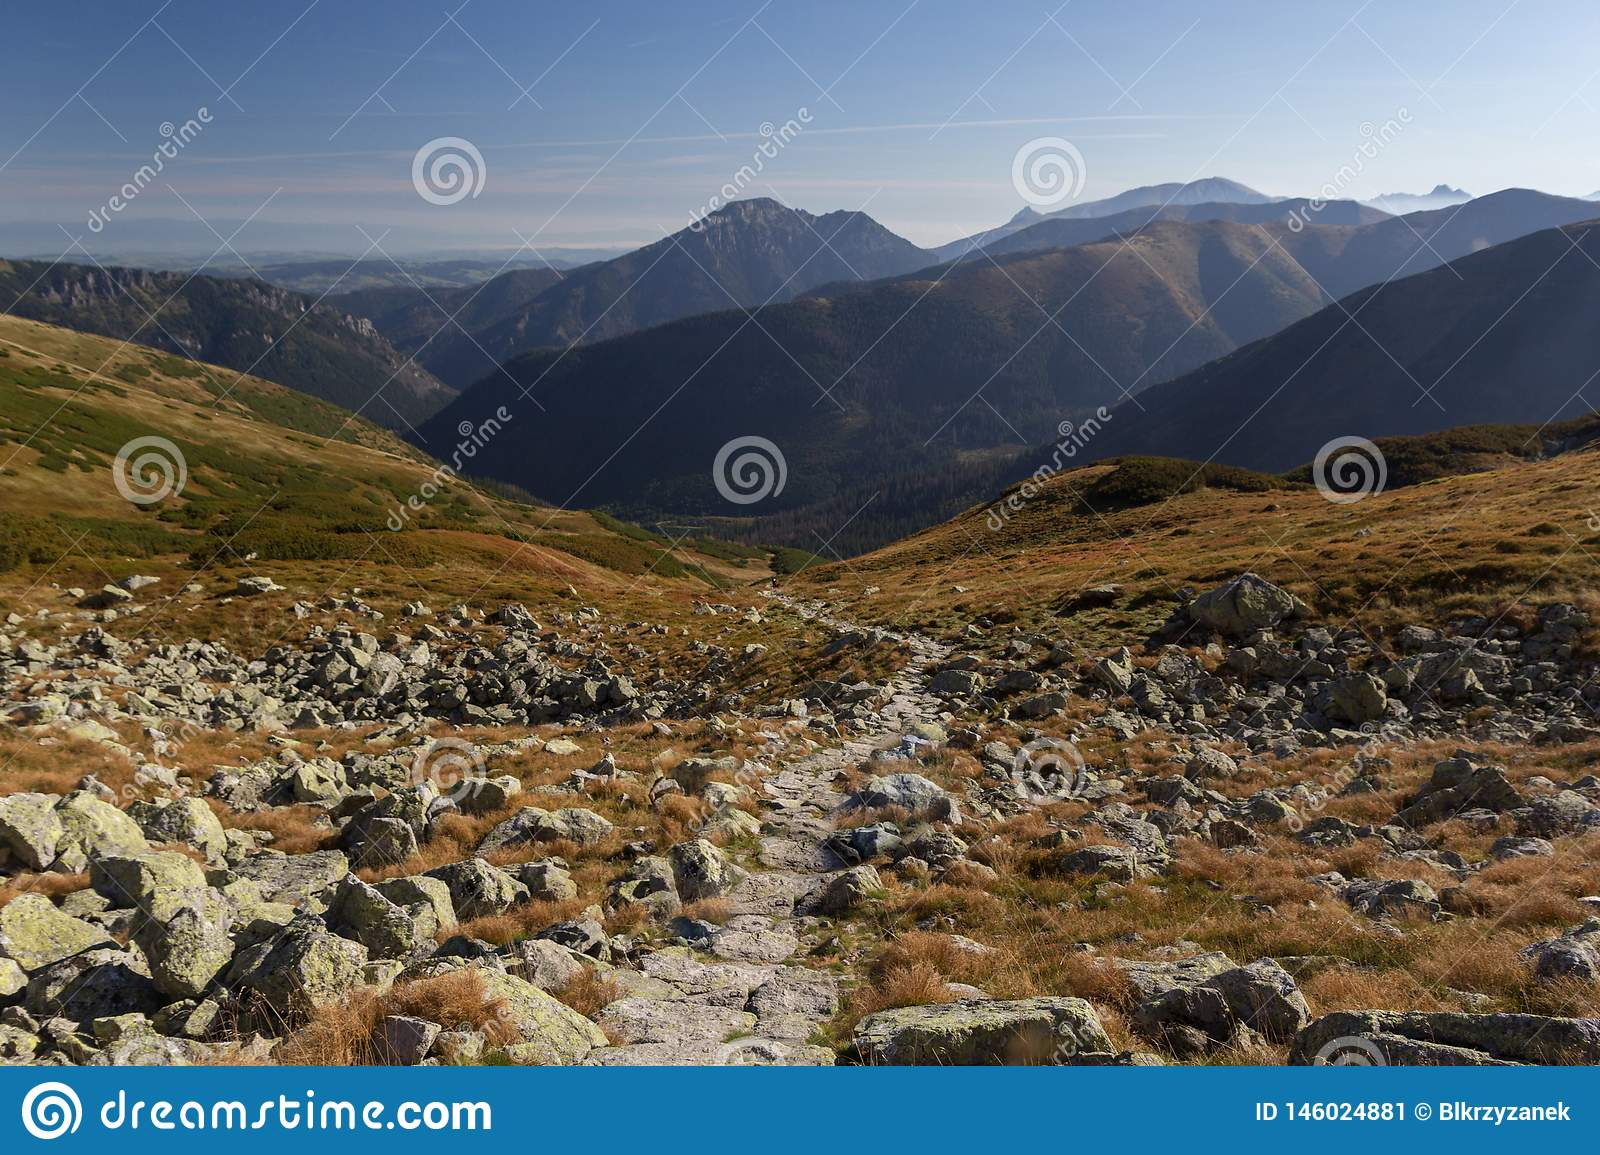 Panoramic view of Tatra mountains in Poland